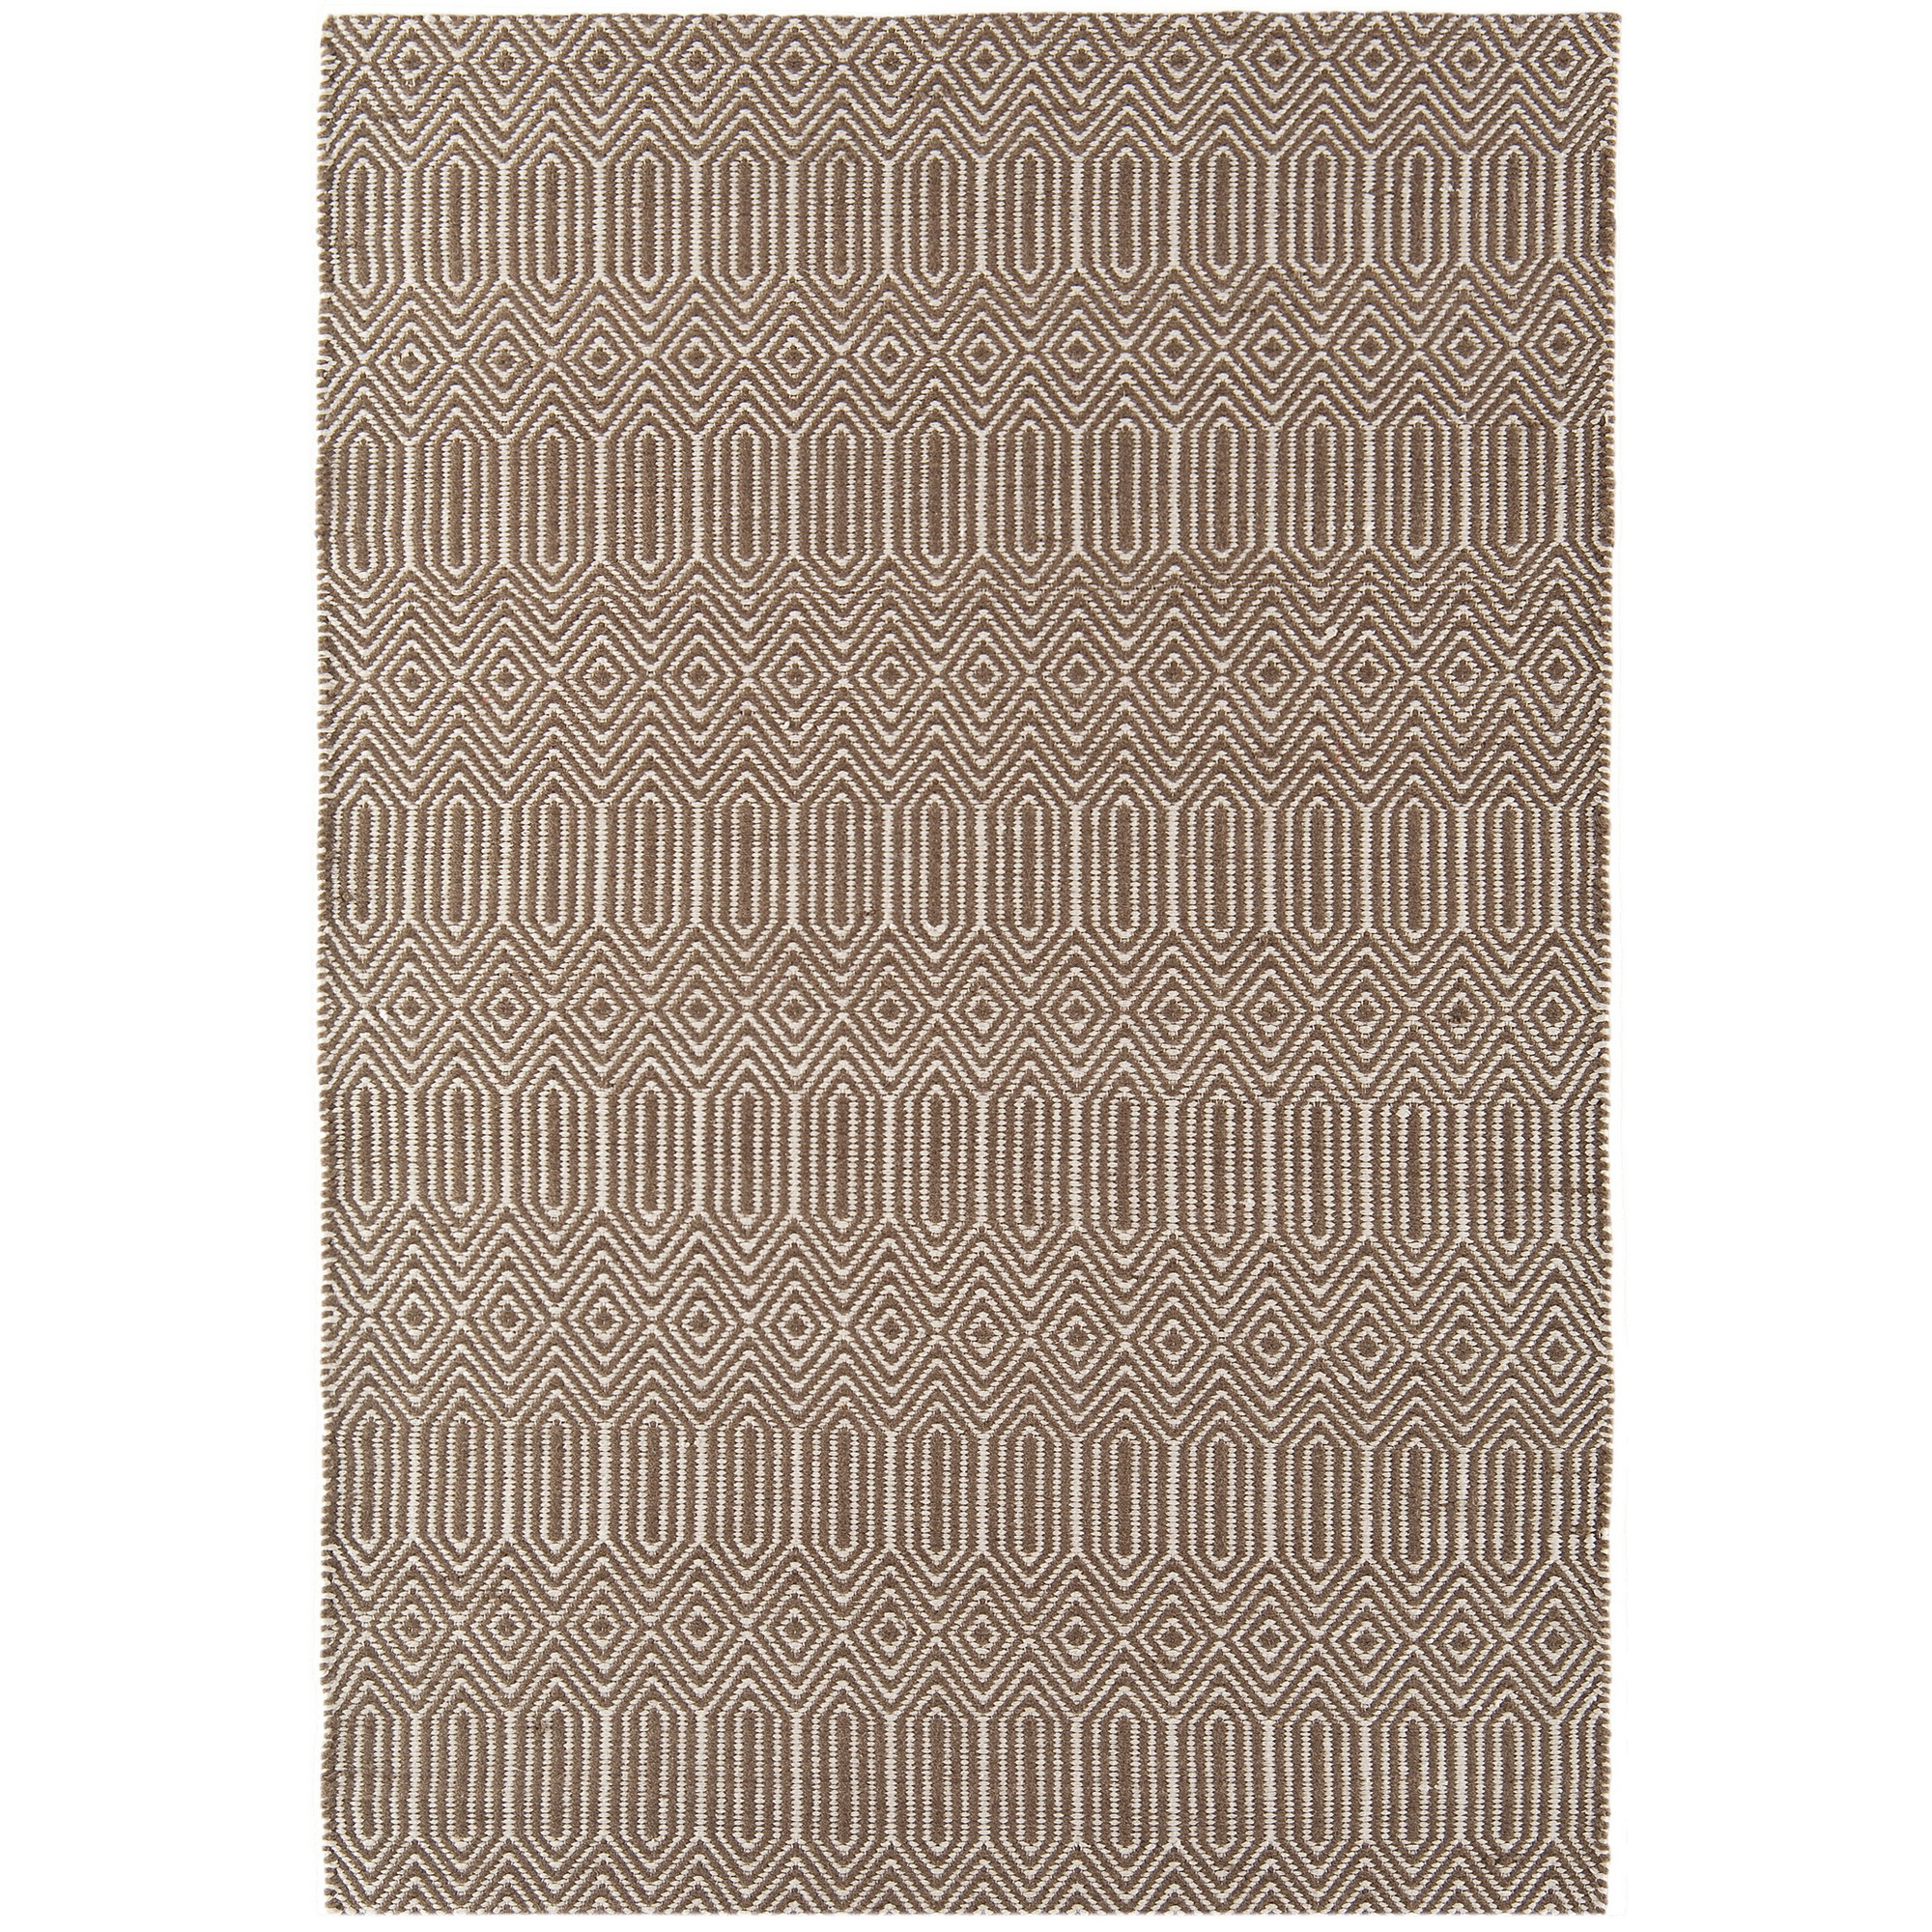 Sloan Rugs in Brown